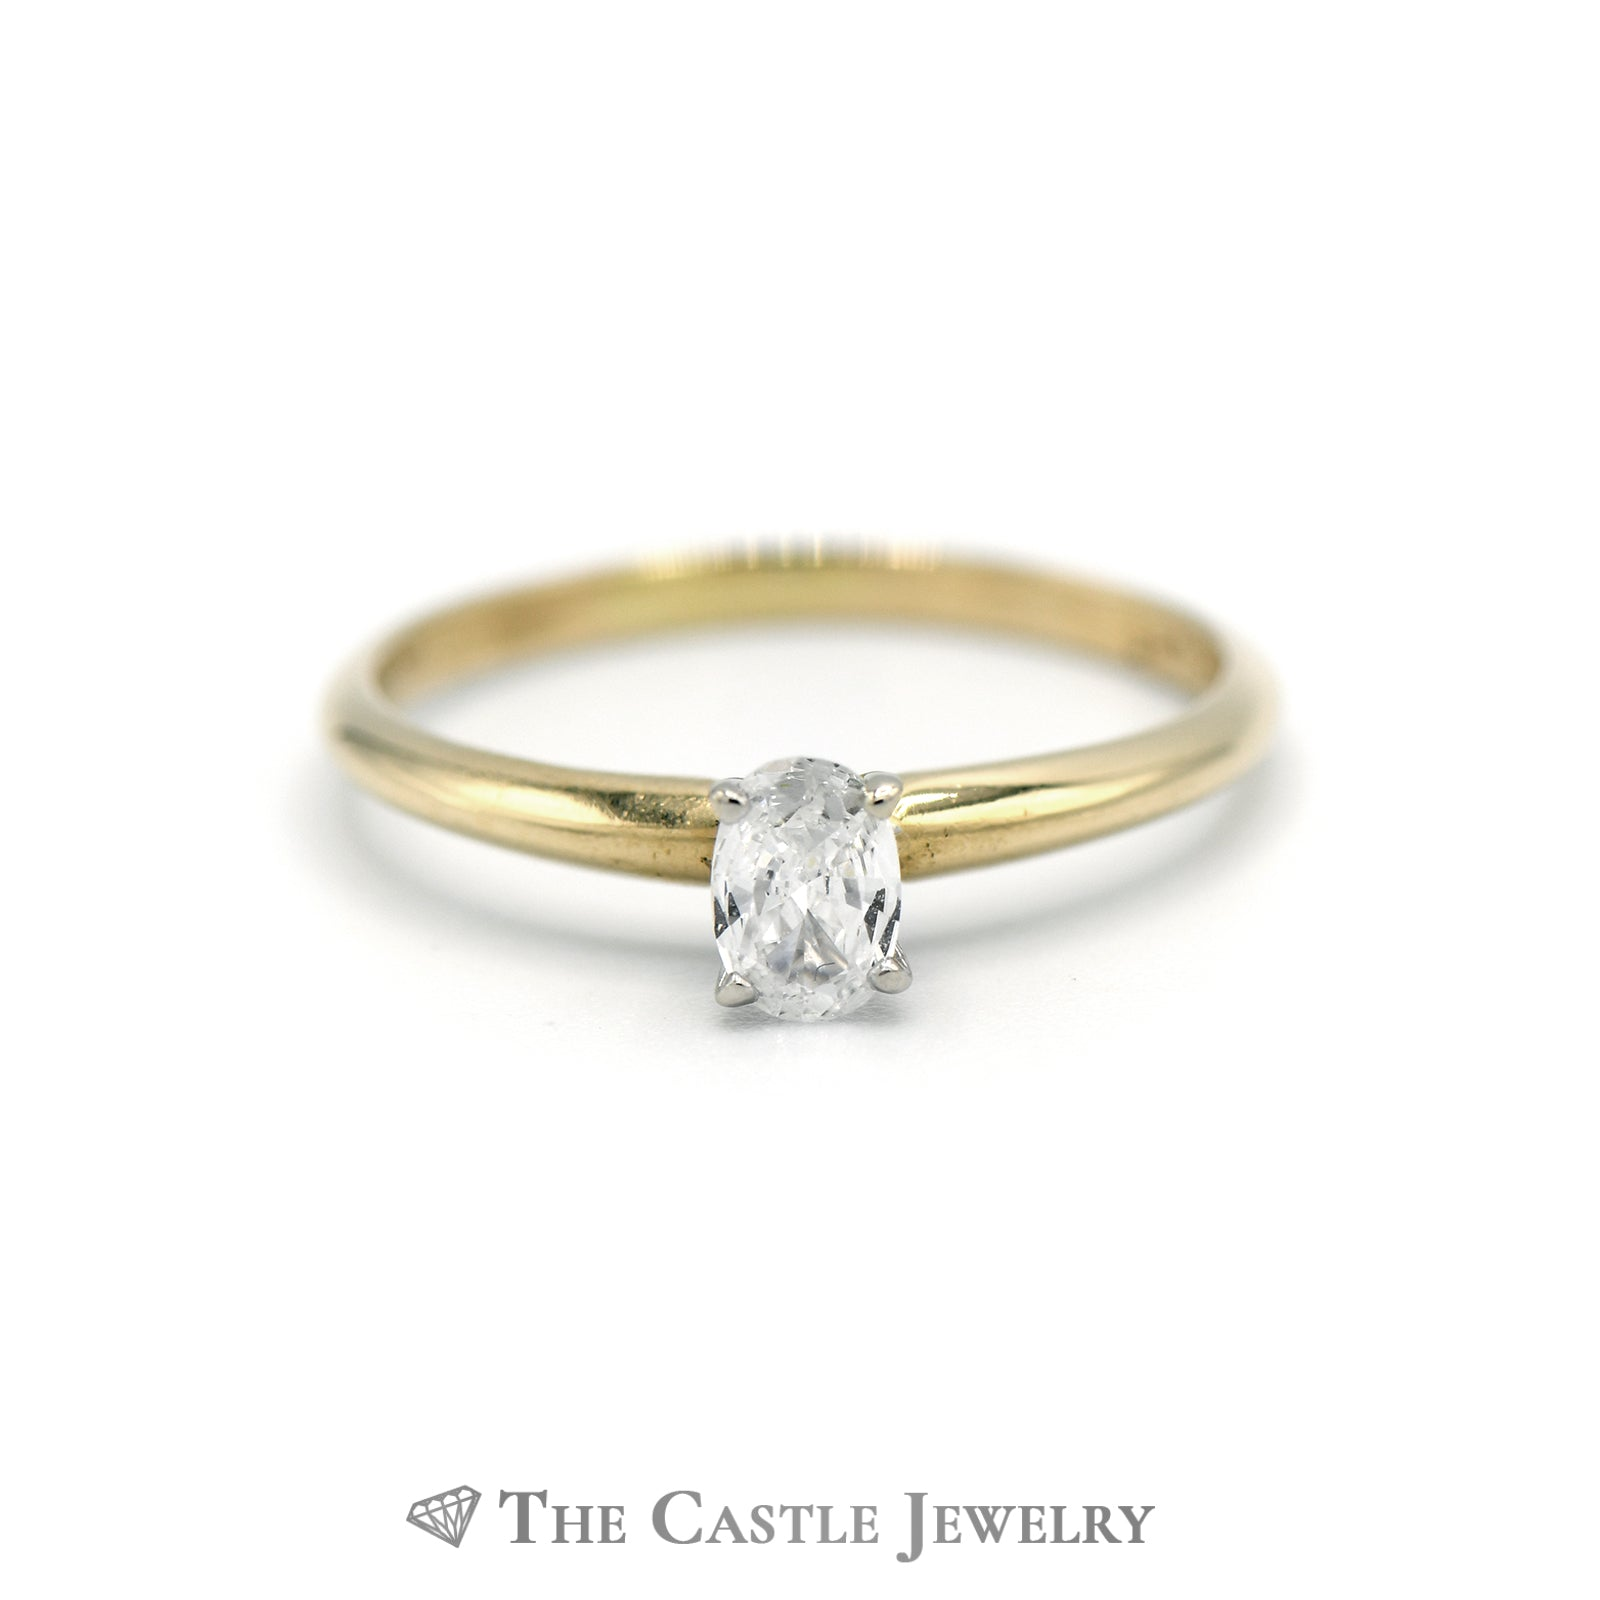 Oval Diamond Solitaire Engagement Ring in 14k Yellow Gold